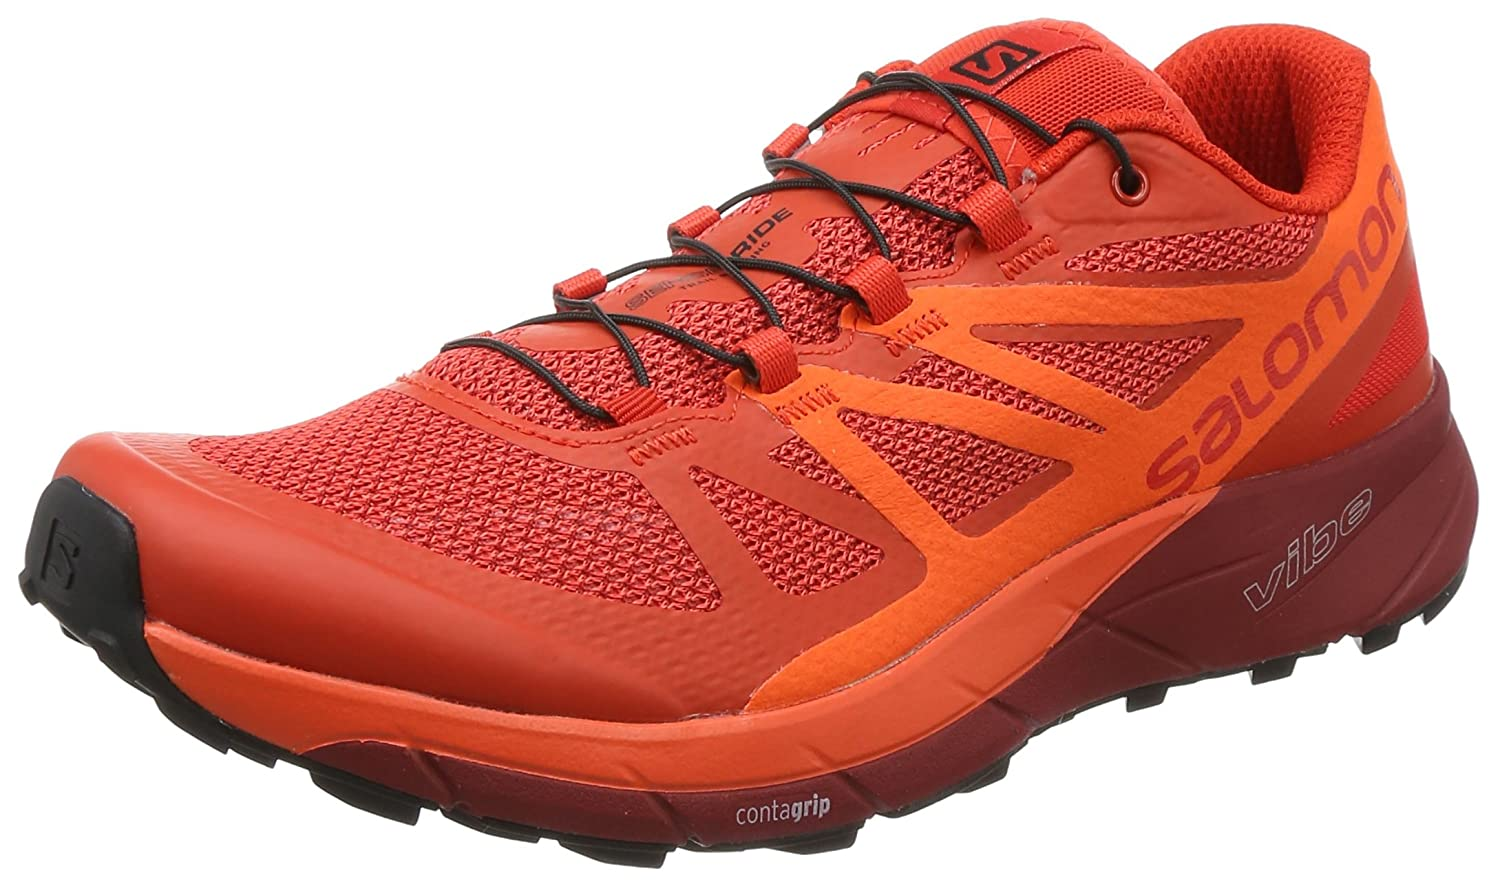 Salomon Sense Ride, Zapatillas de Trail Running para Hombre 43 1/3 EU|Rojo (Fiery Red/Scarlet Ibis/Red Dalhia 000)